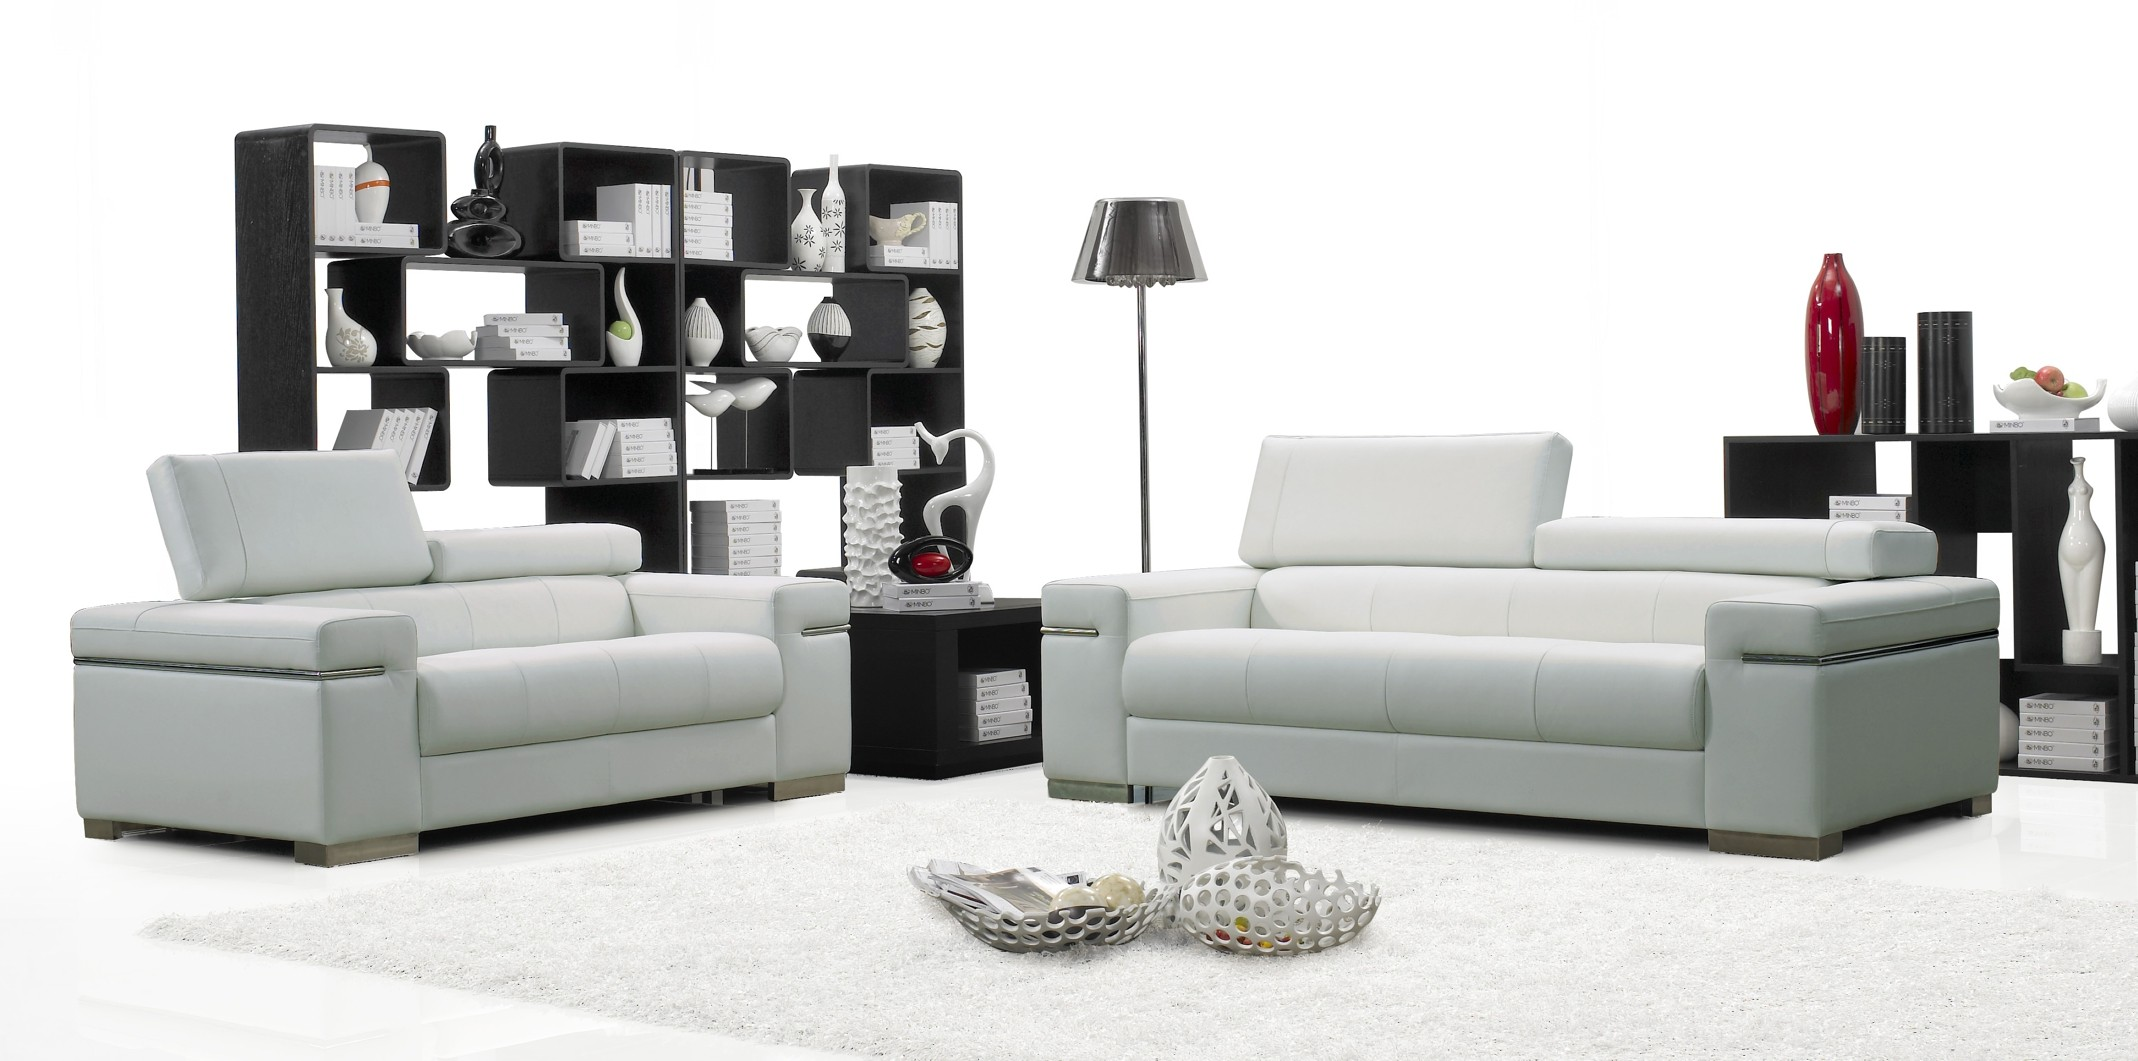 True modern furniture online homesfeed for Home furniture ideas